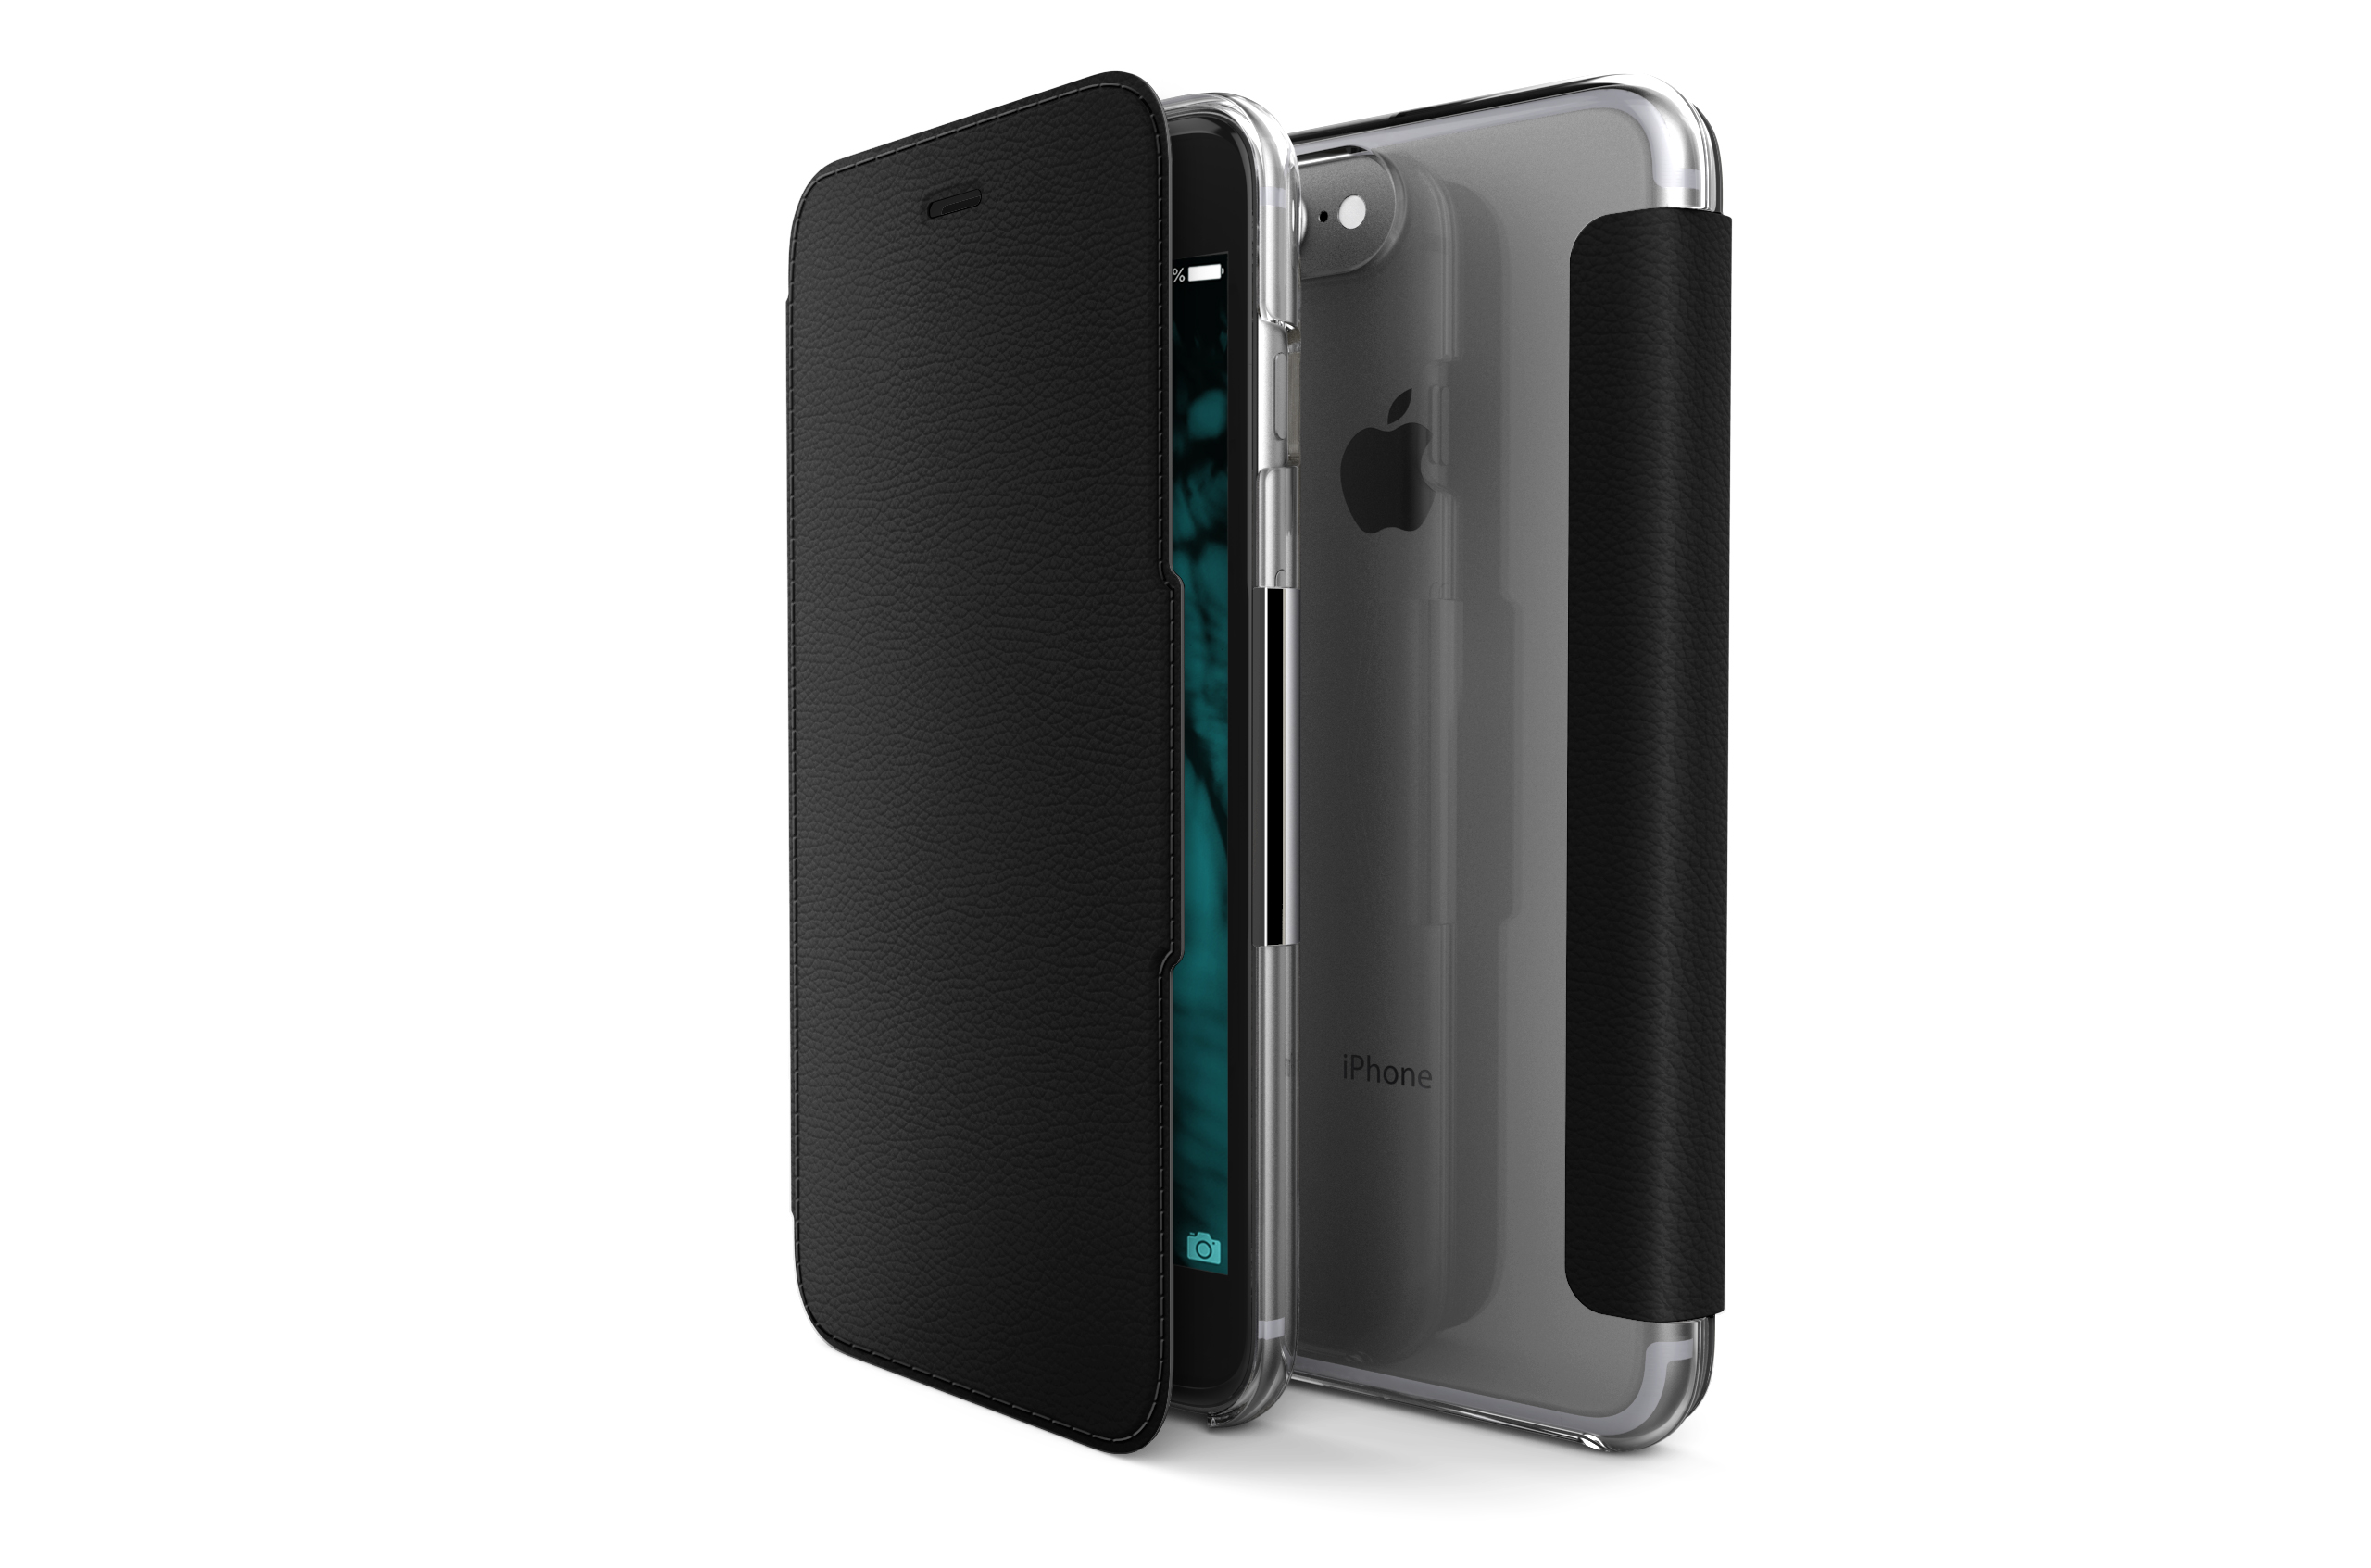 Pouzdro / kryt pro iPhone 7 Plus - X-DORIA, ENGAGE FOLIO BLACK